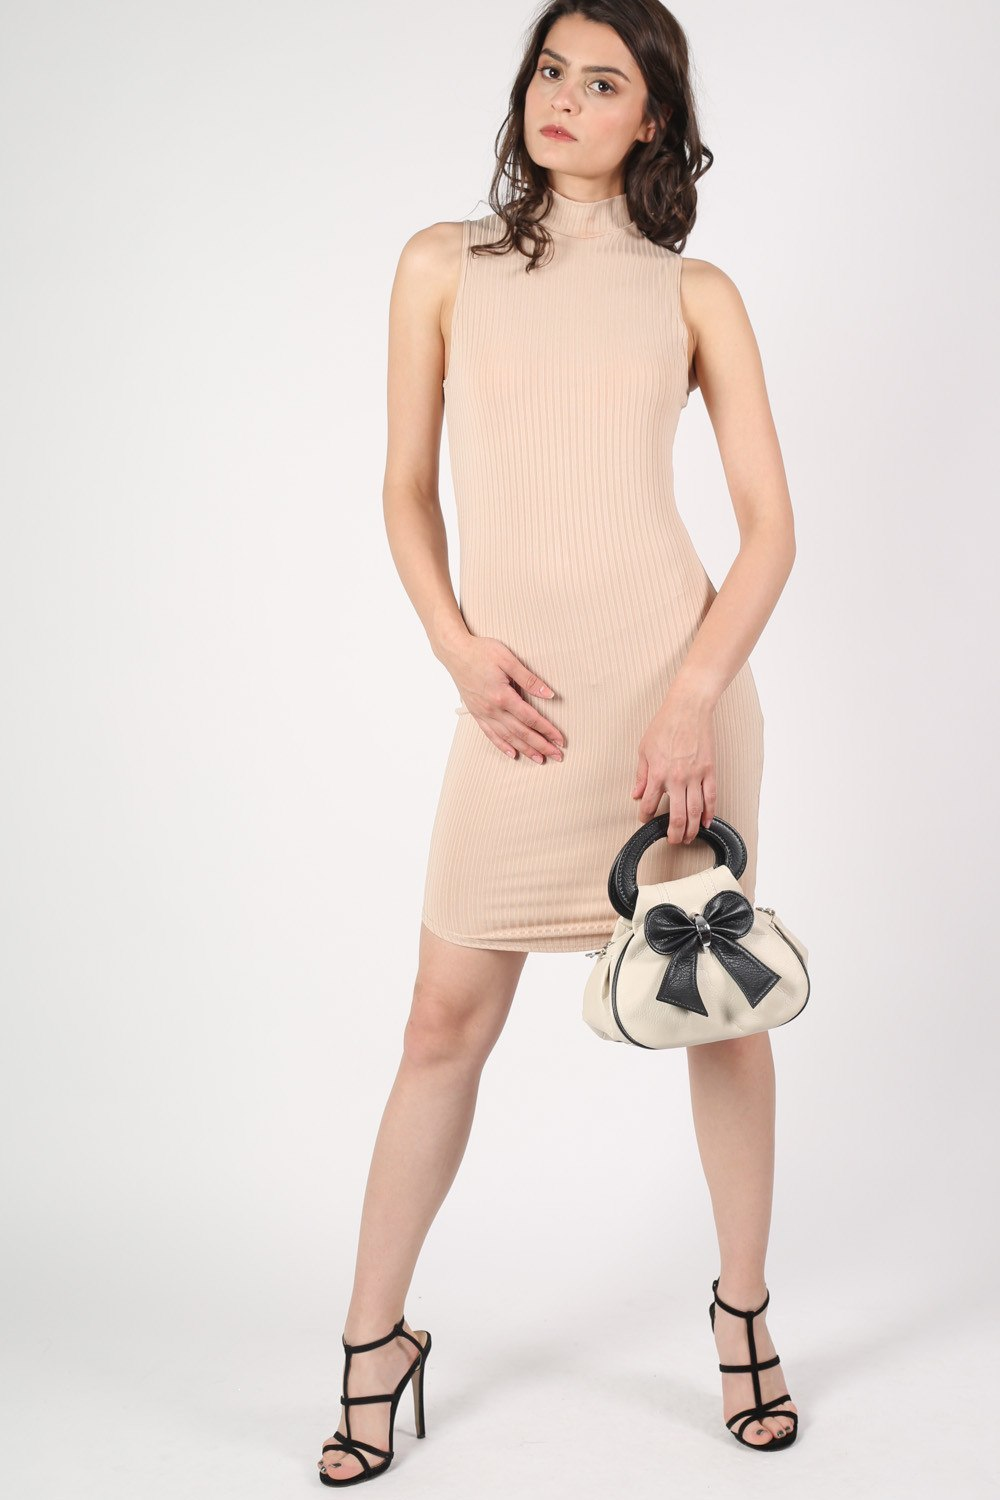 High Neck Sleeveless Rib Bodycon Dress in Camel Brown MODEL FRONT